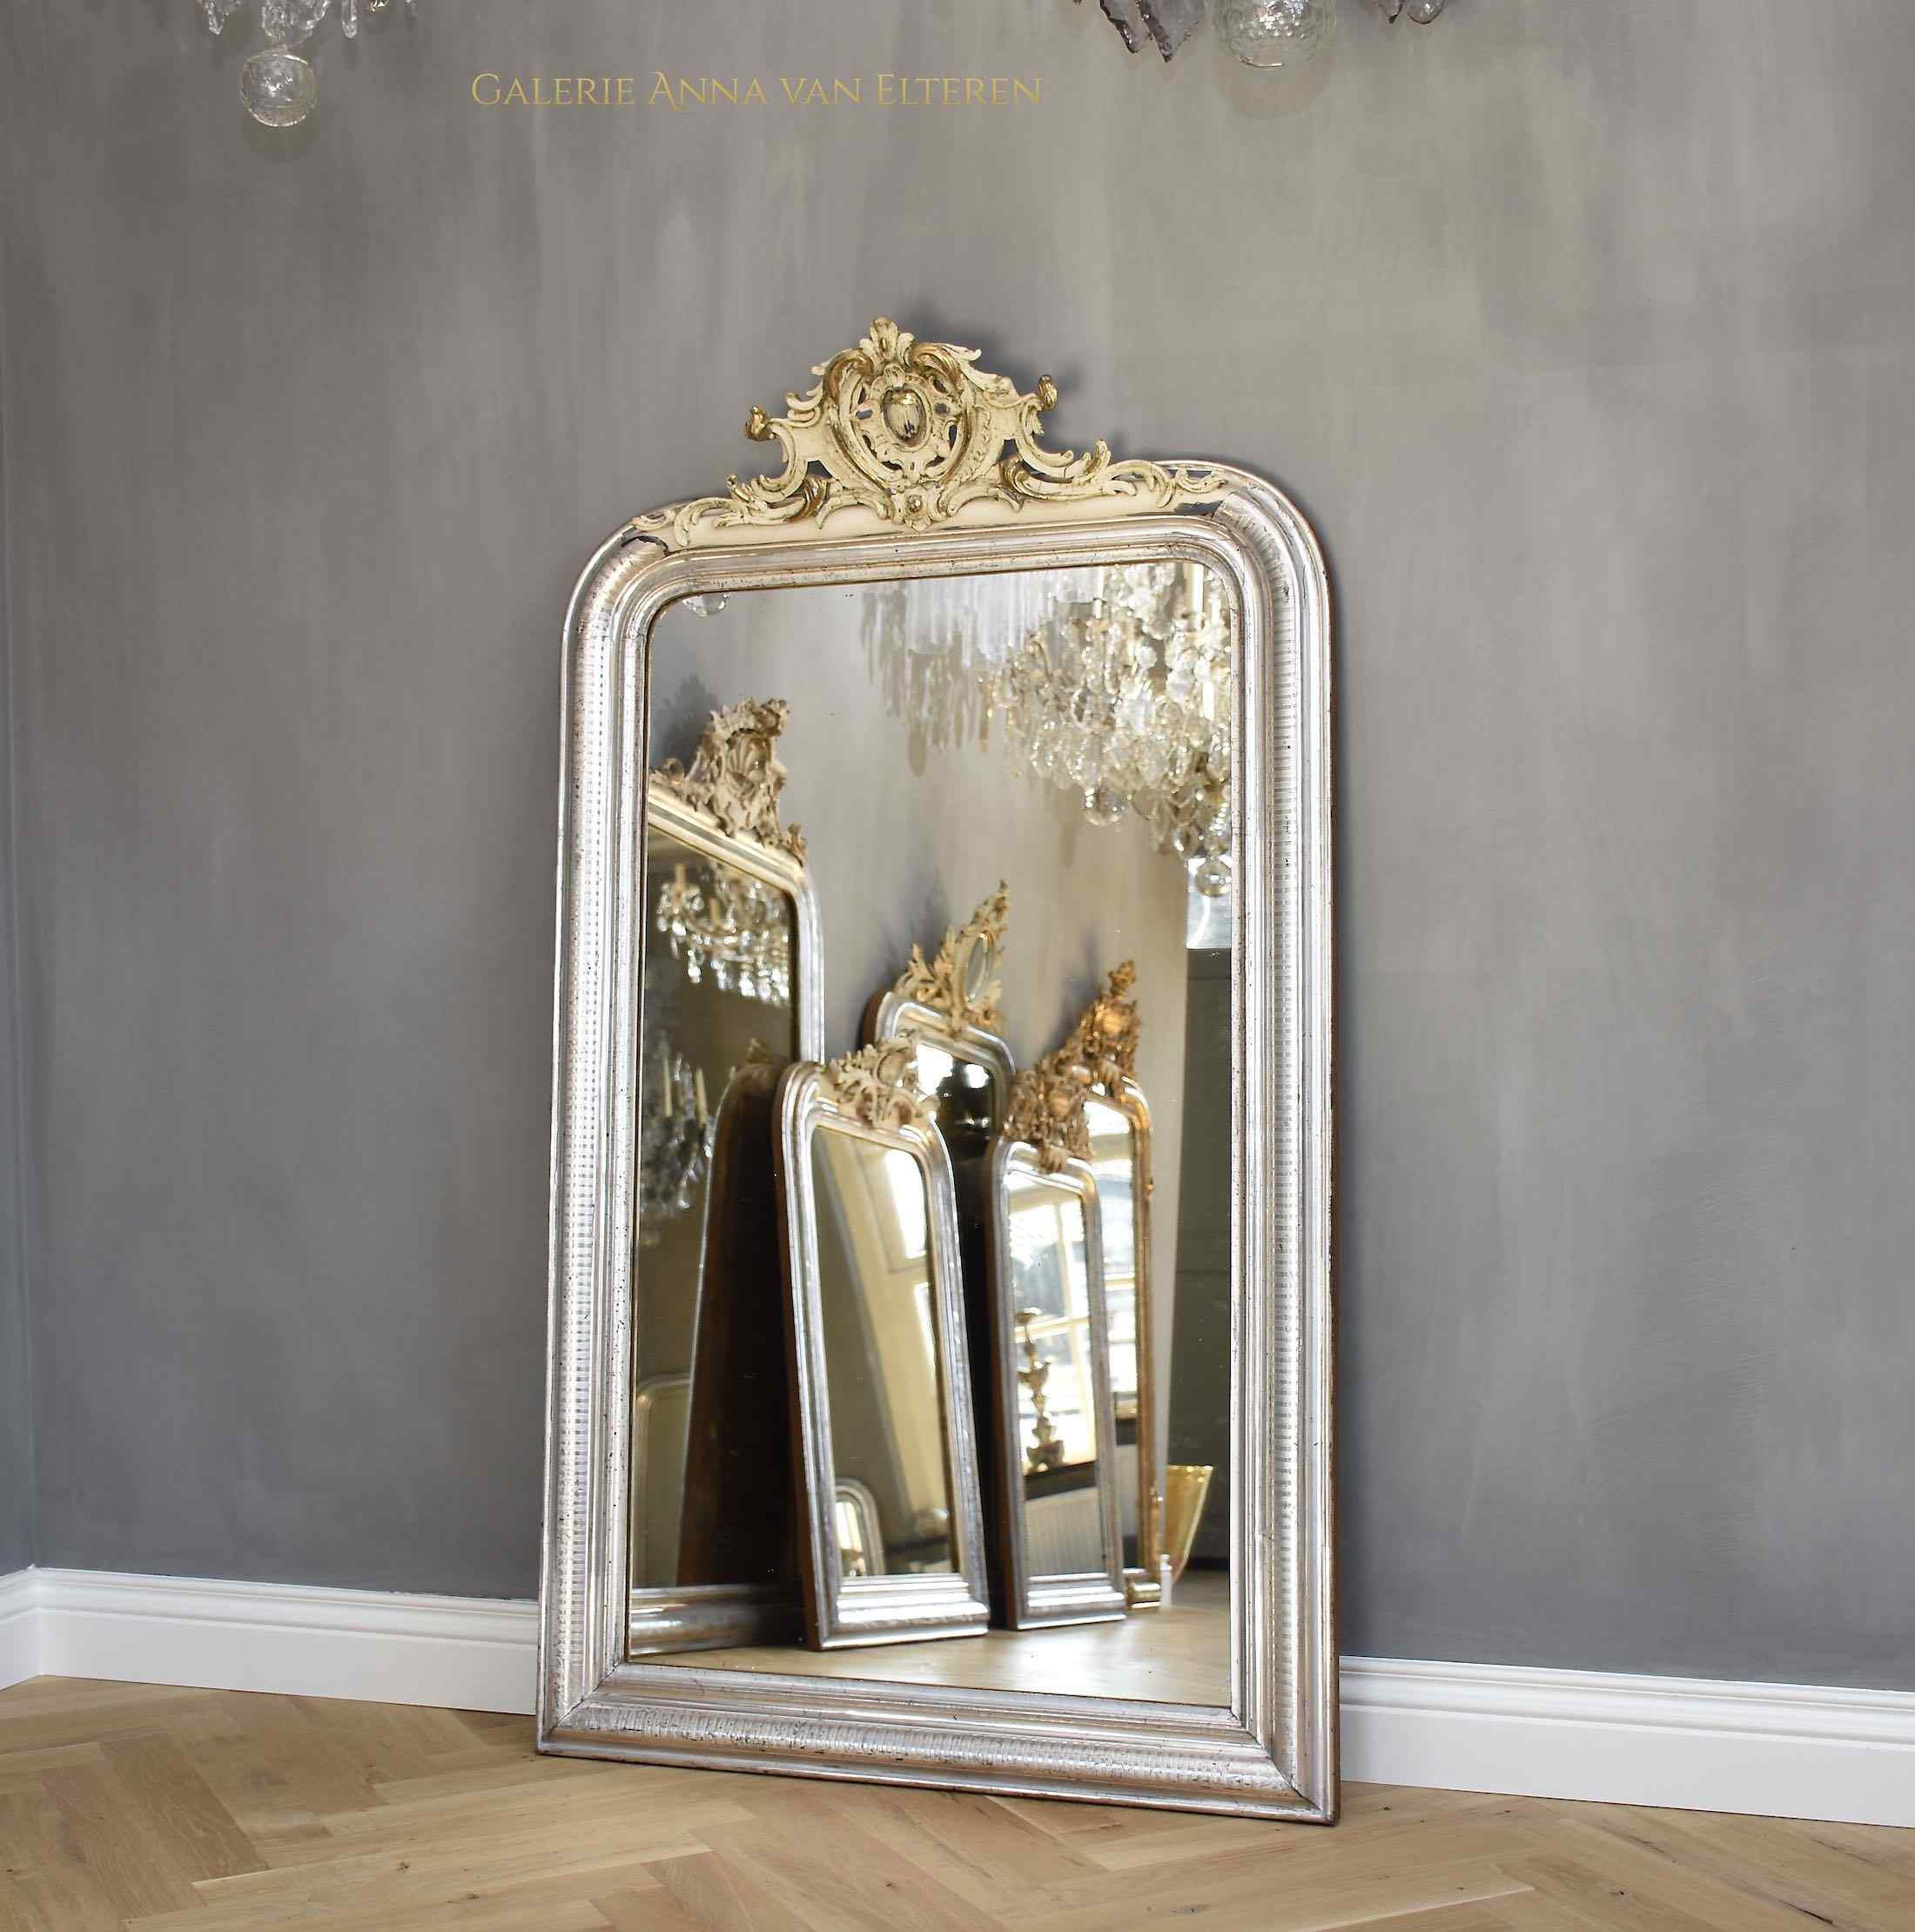 Large antique carved and gilded French mirror with a crest